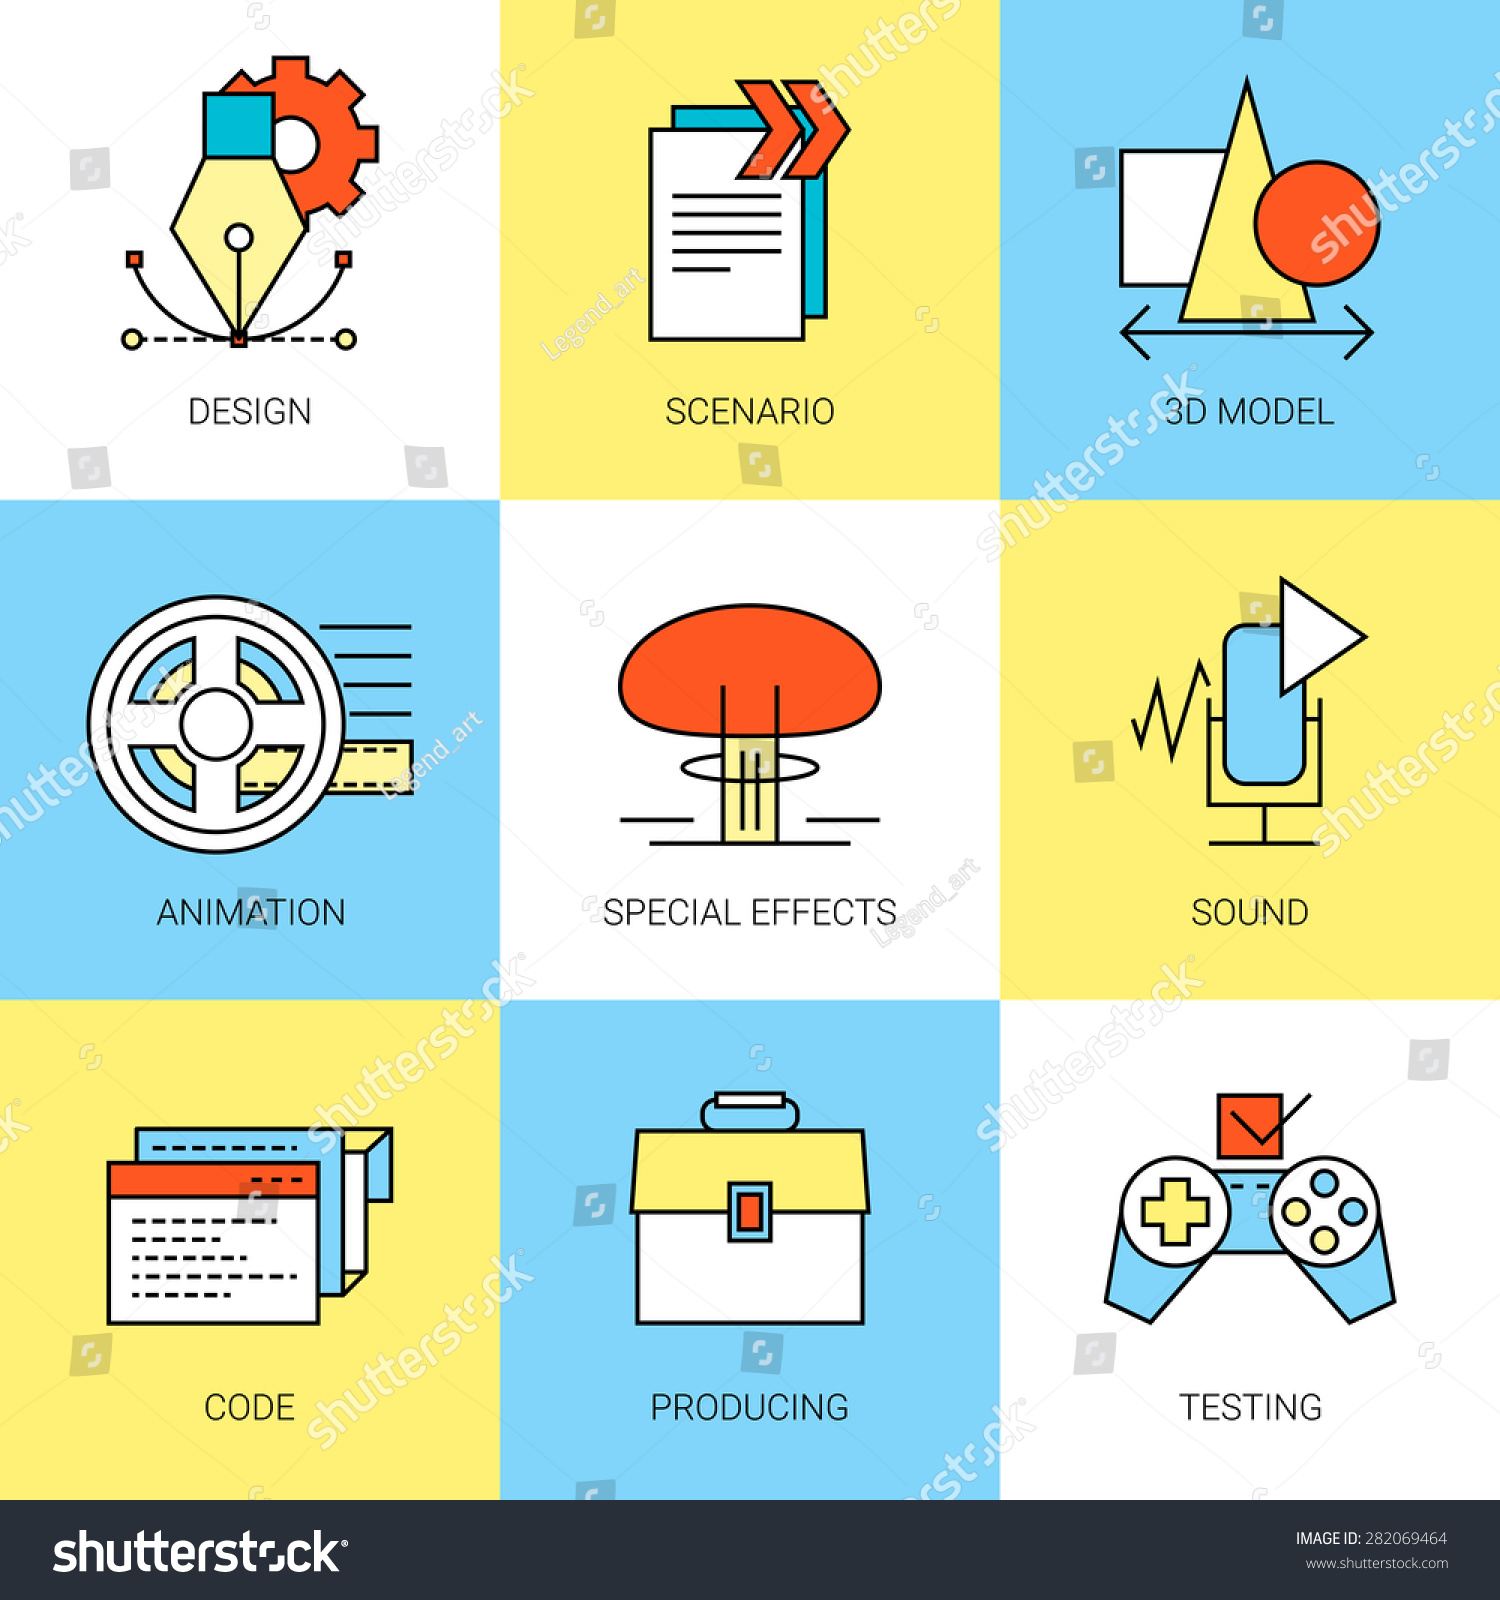 Game Development Process Main Parts Fully Stock Vector 282069464 ...